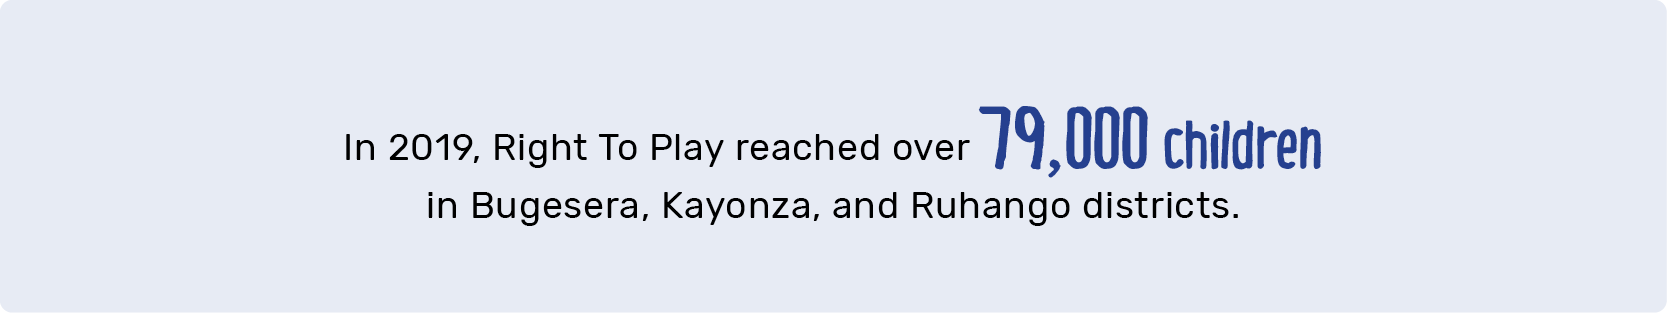 Rwanda - Country Pages - Reach Stat.png